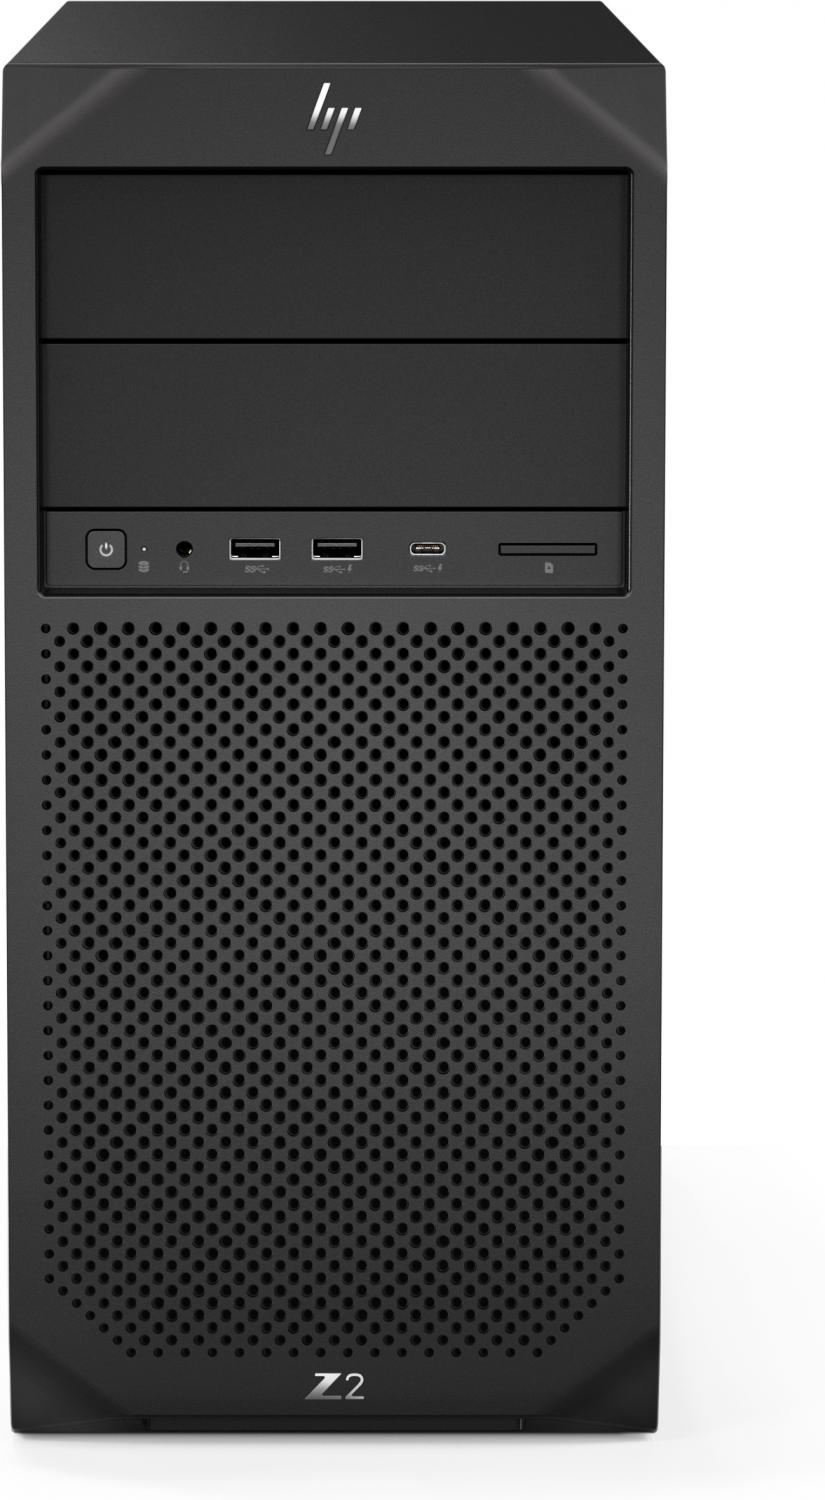 HP 6TW05ET#ABZ Workstation i7 SSD 512 GB Ram 16 GB Intel i7 Windows 10 Pro 6TW05ET Z2 G4